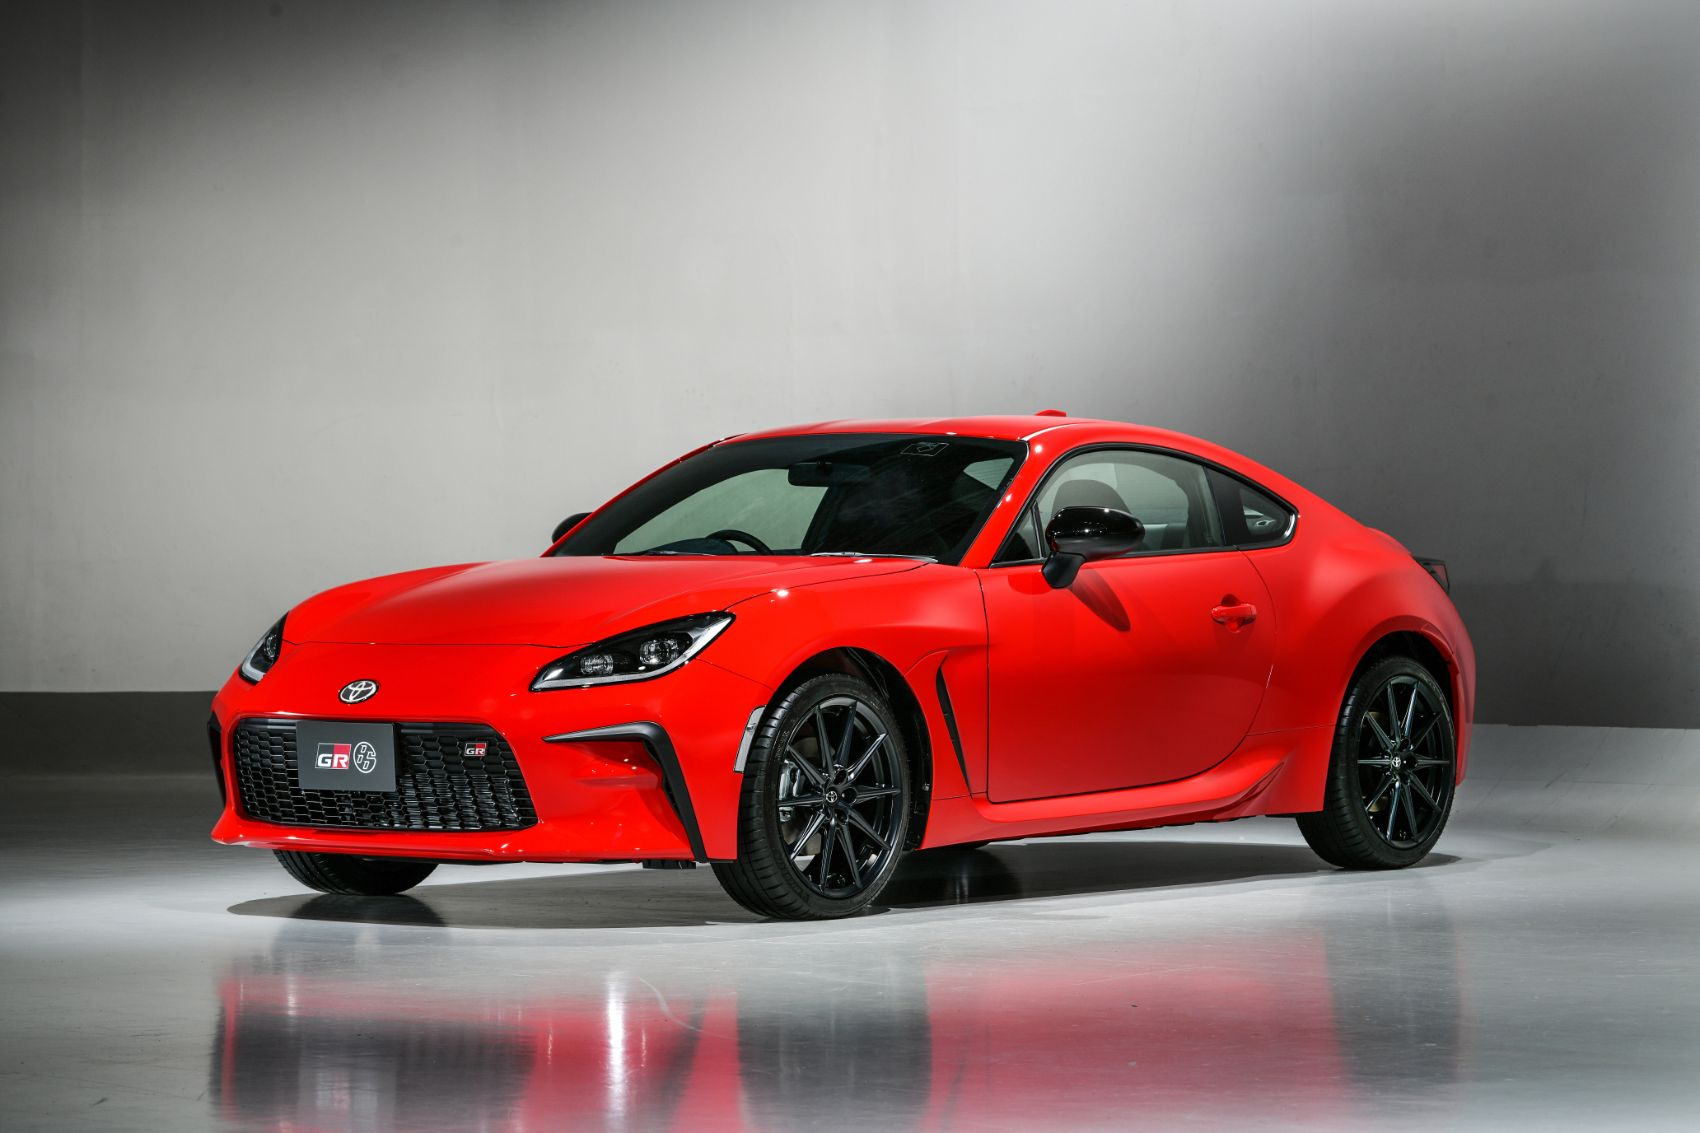 2022 Toyota GR 86: New Name, More Powerful Engine, Same Fun-To-Drive Attitude!